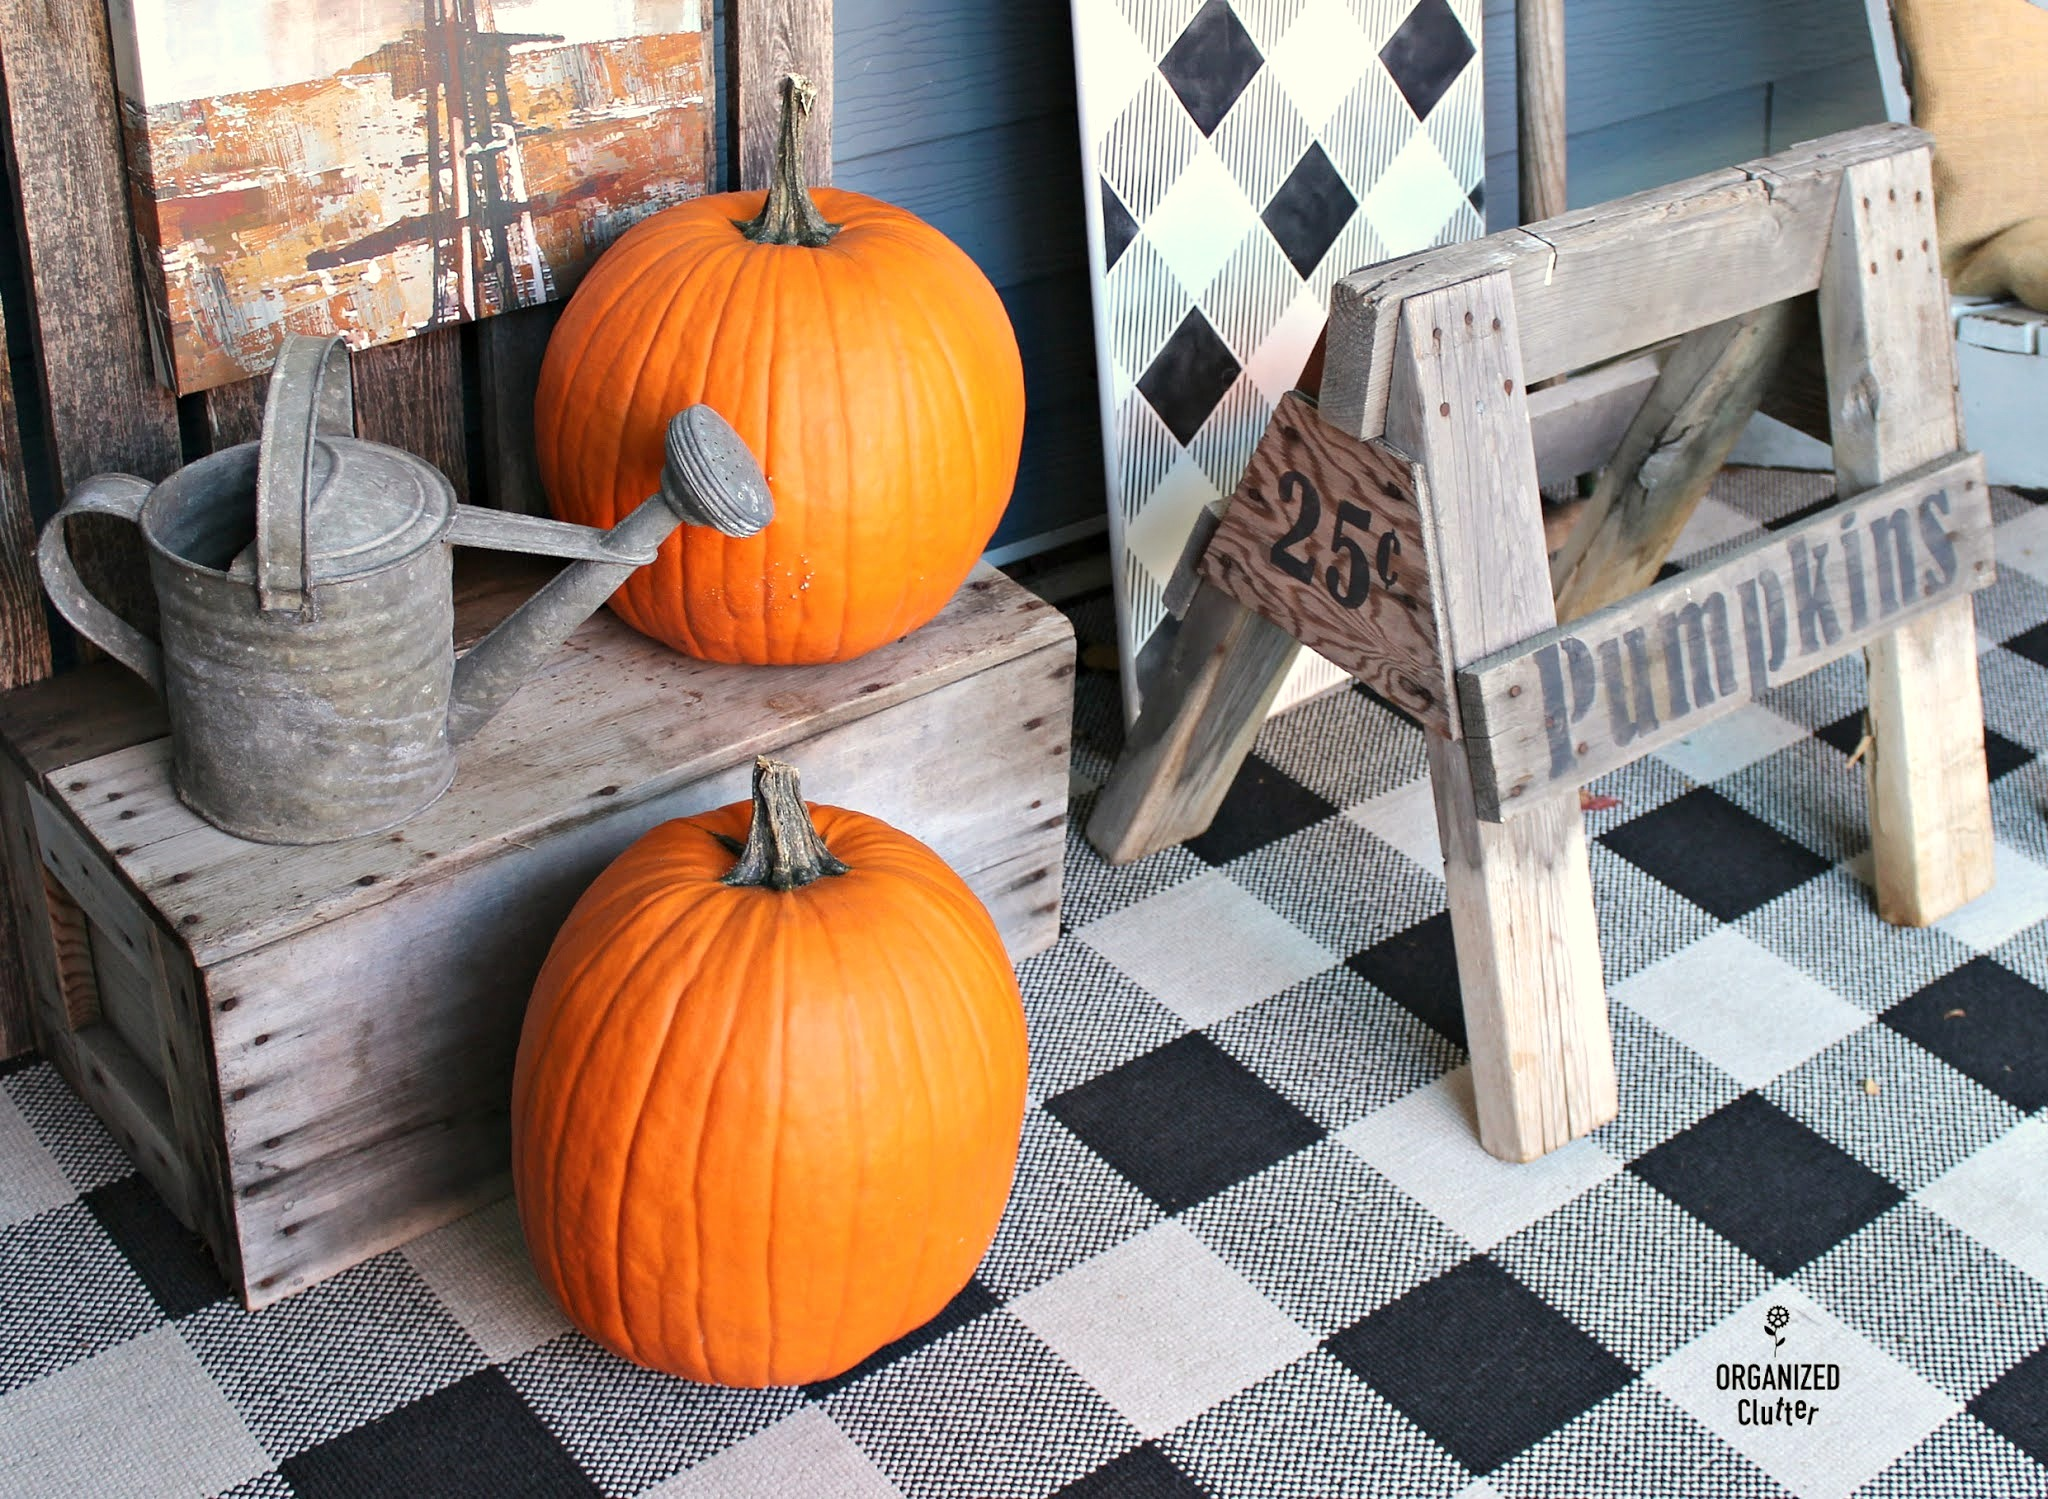 Sawhorse pumpkin sign fall porch by Organized Clutter, featured on DIY Salvaged Junk Projects 549 on Funky Junk!